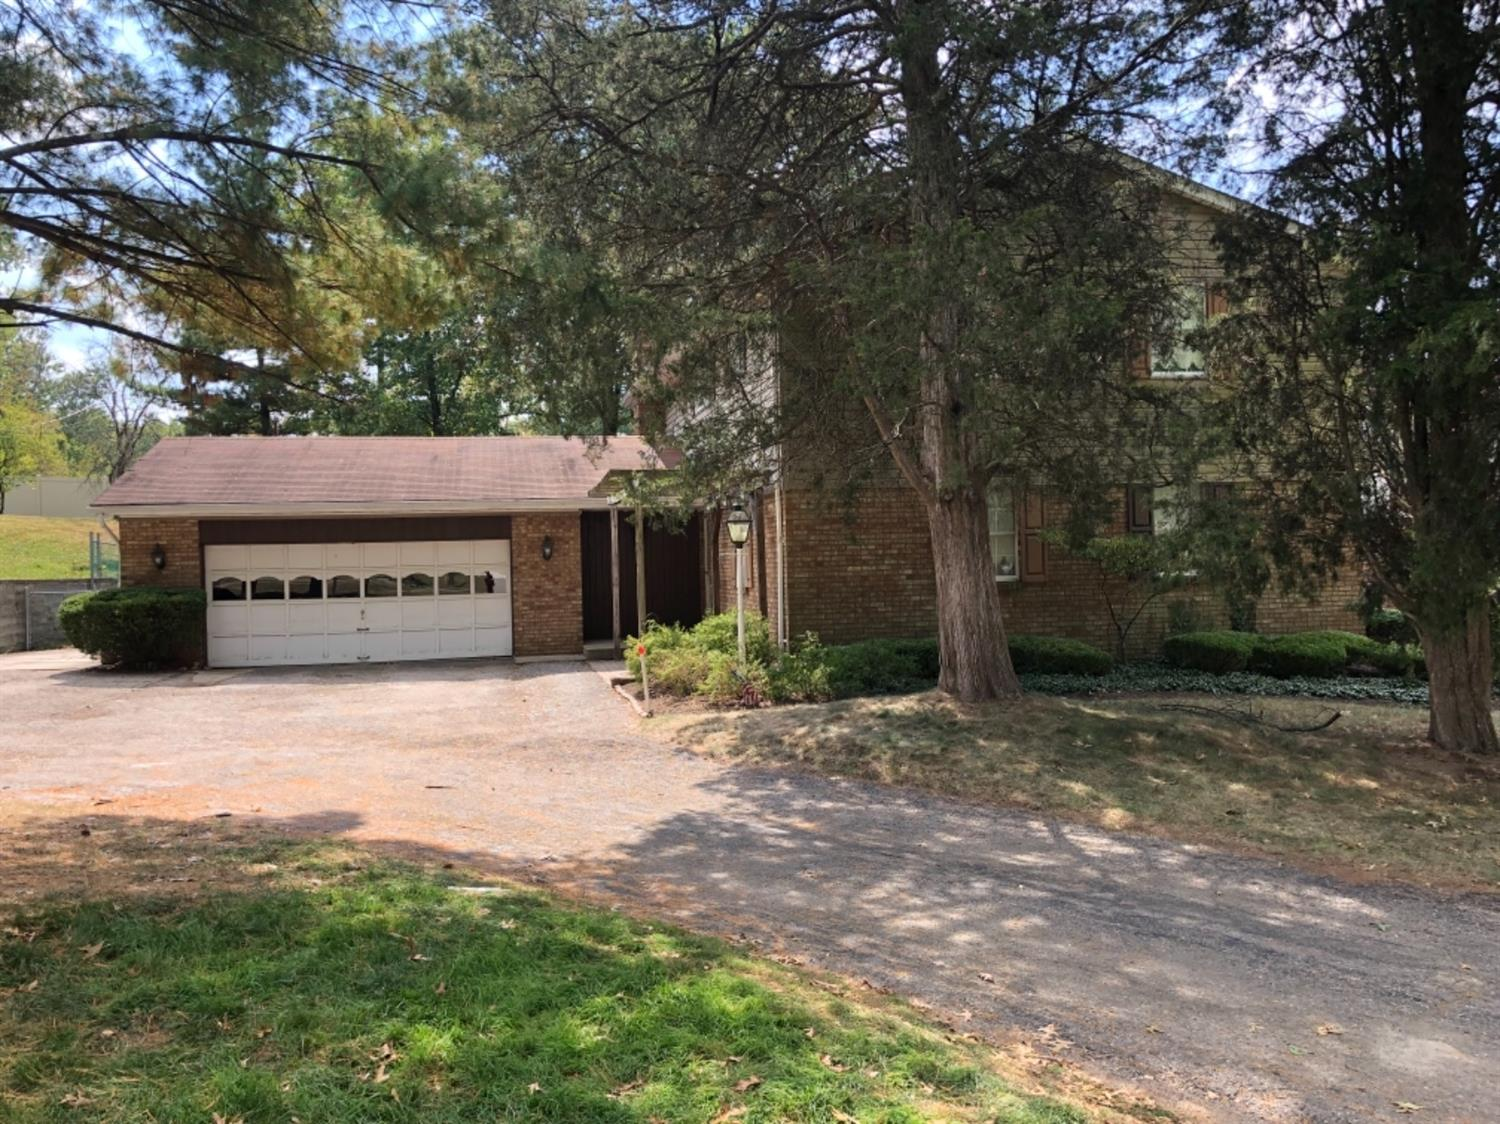 5573 Cleves Warsaw Pk Delhi Twp., OH